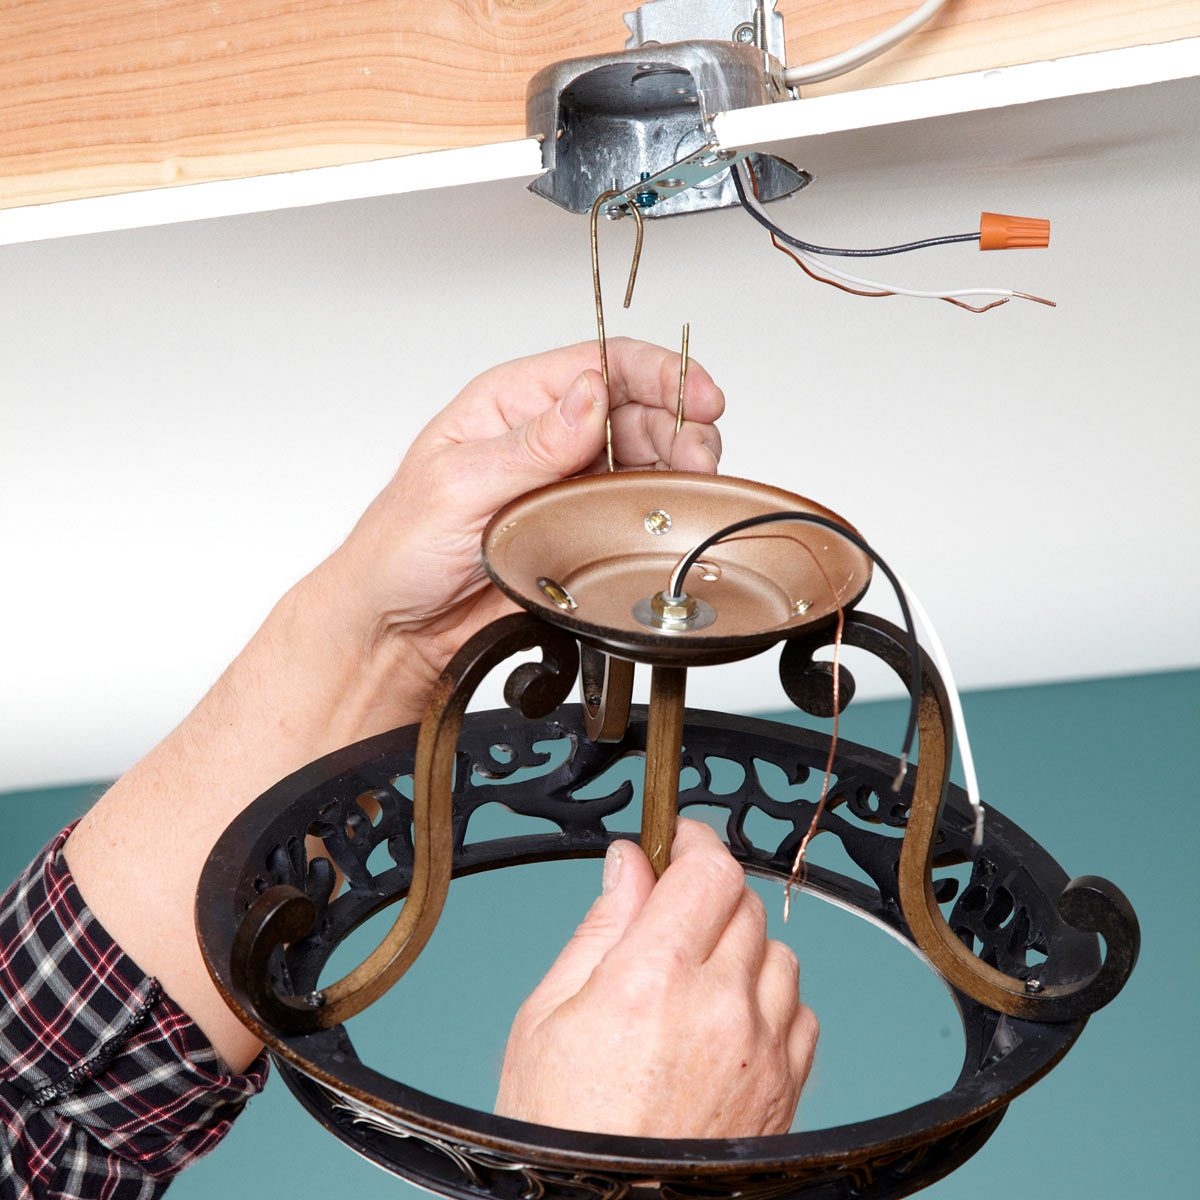 third hand installing light fixture